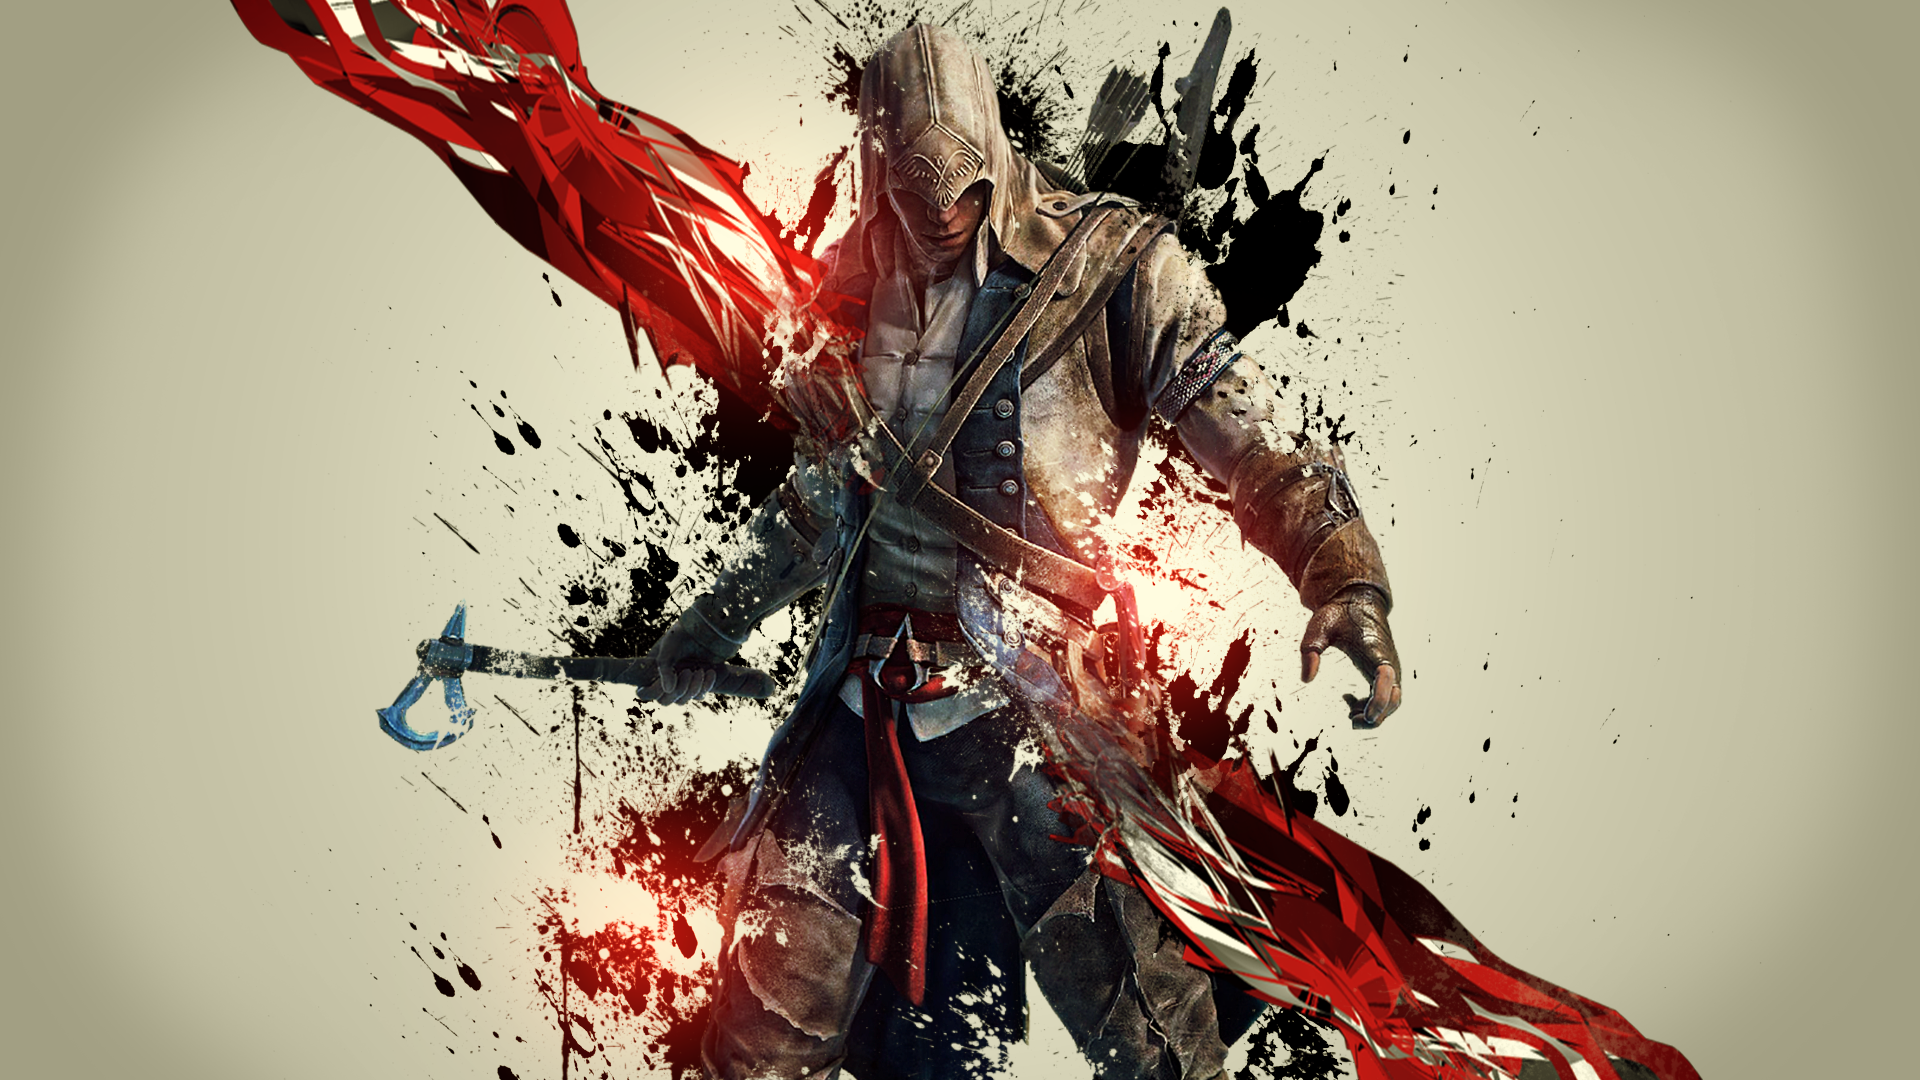 Assassin 039 S Creed Iii Connor Assassin 039 S Creed Warrior 1920x1080